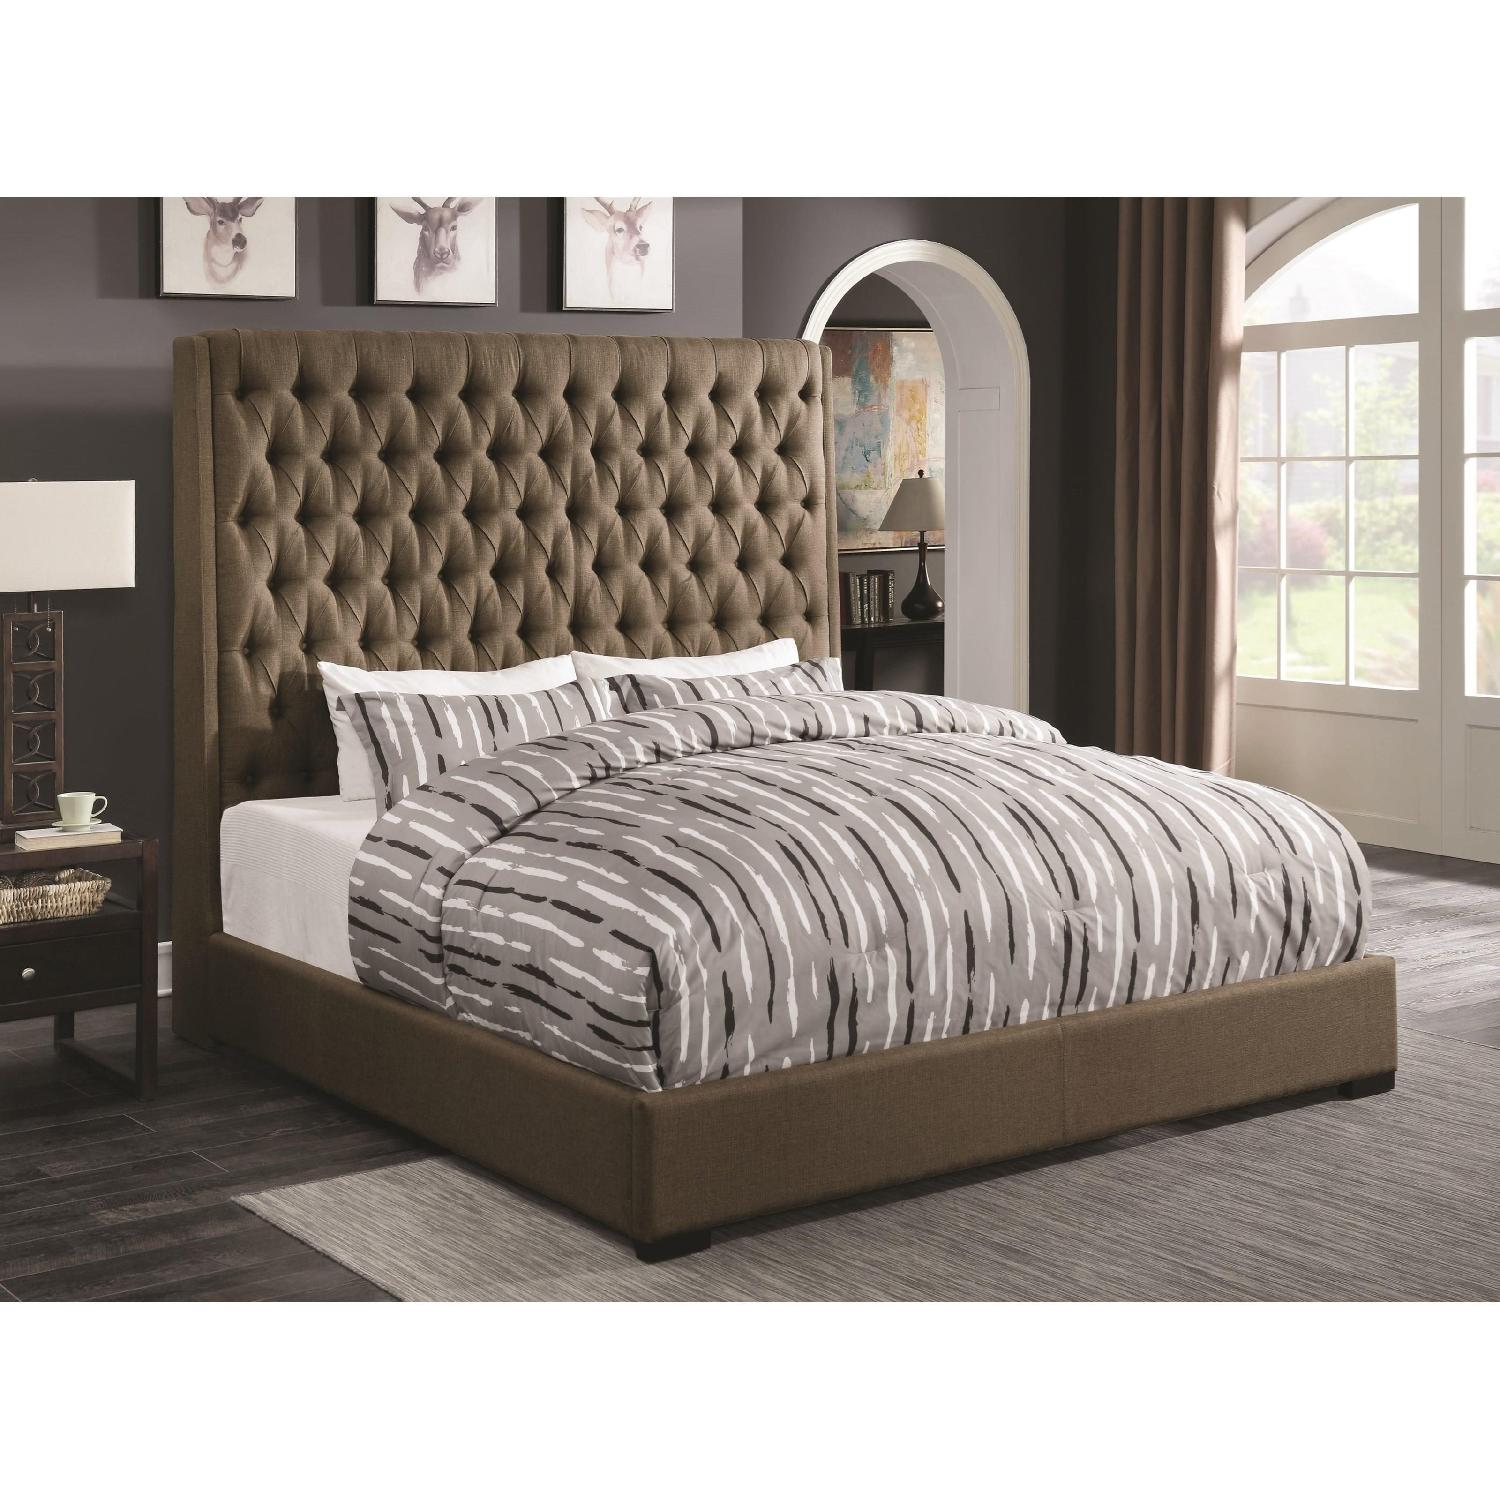 Modern Queen Bed In Brown Fabric W Extra Tall Button Tufted Headboard In Grey Fabric Upholstery Aptdeco